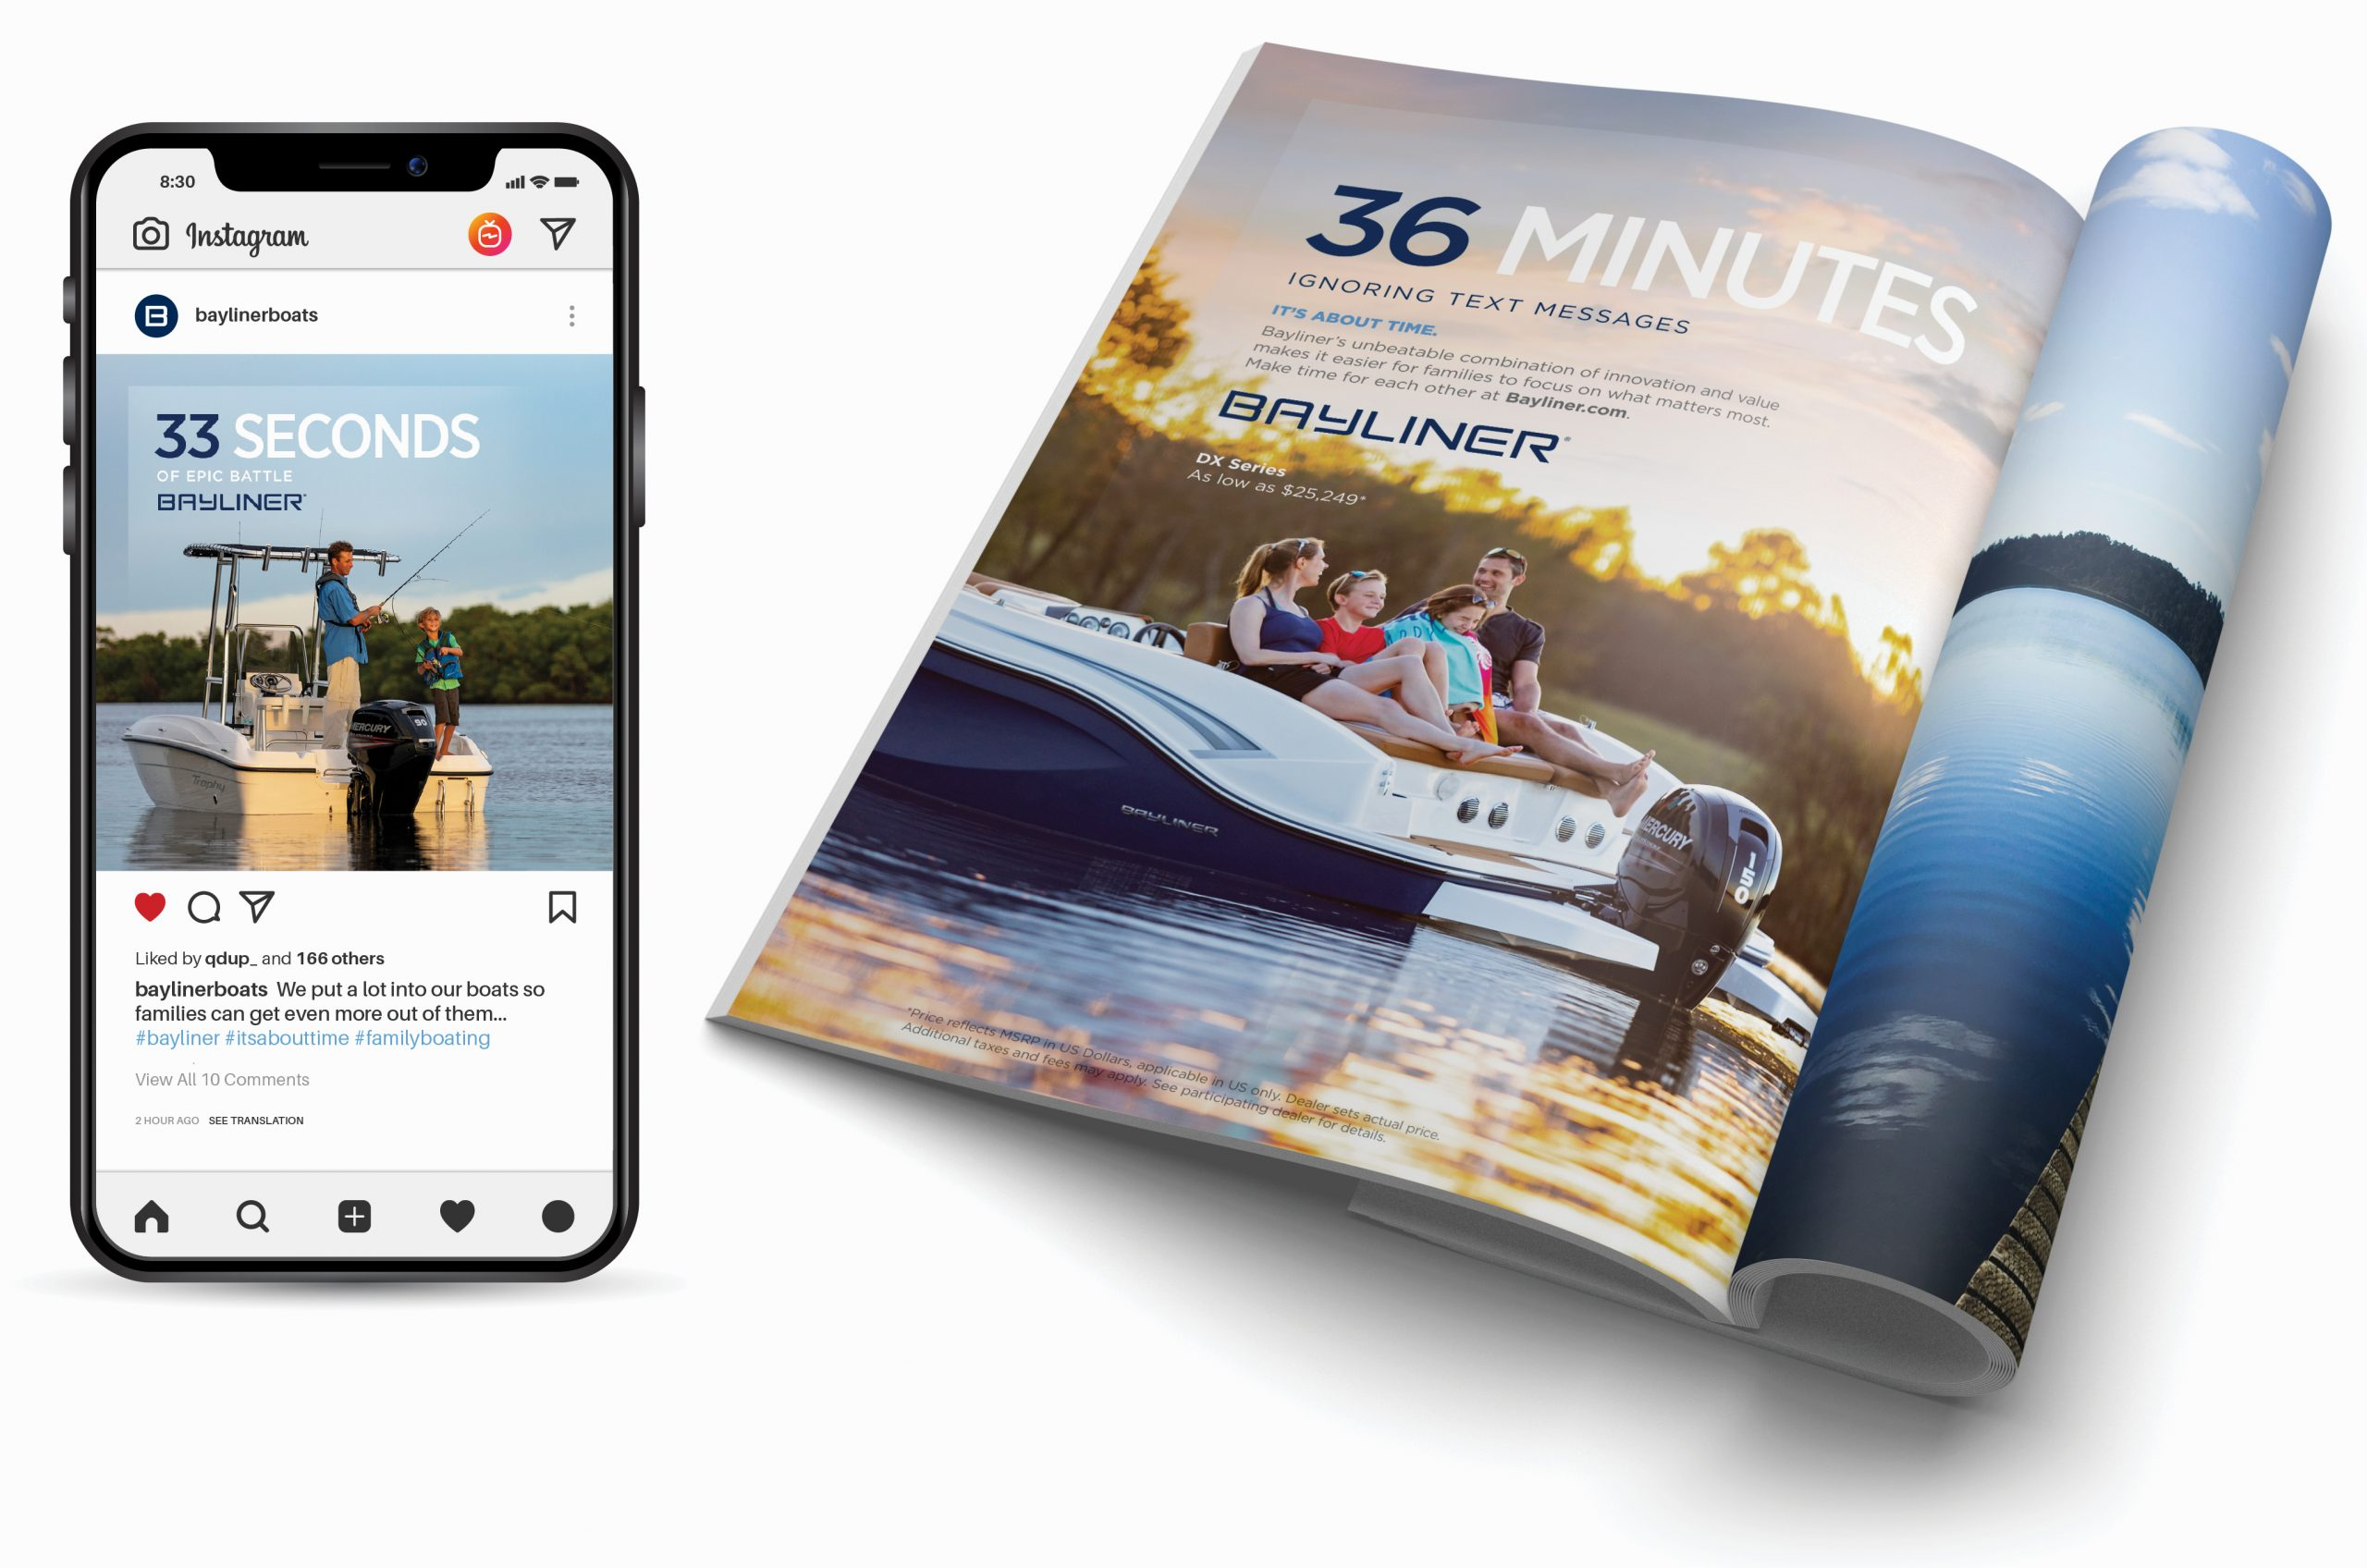 Bayliner Boats - Brand awareness campaign examples 2